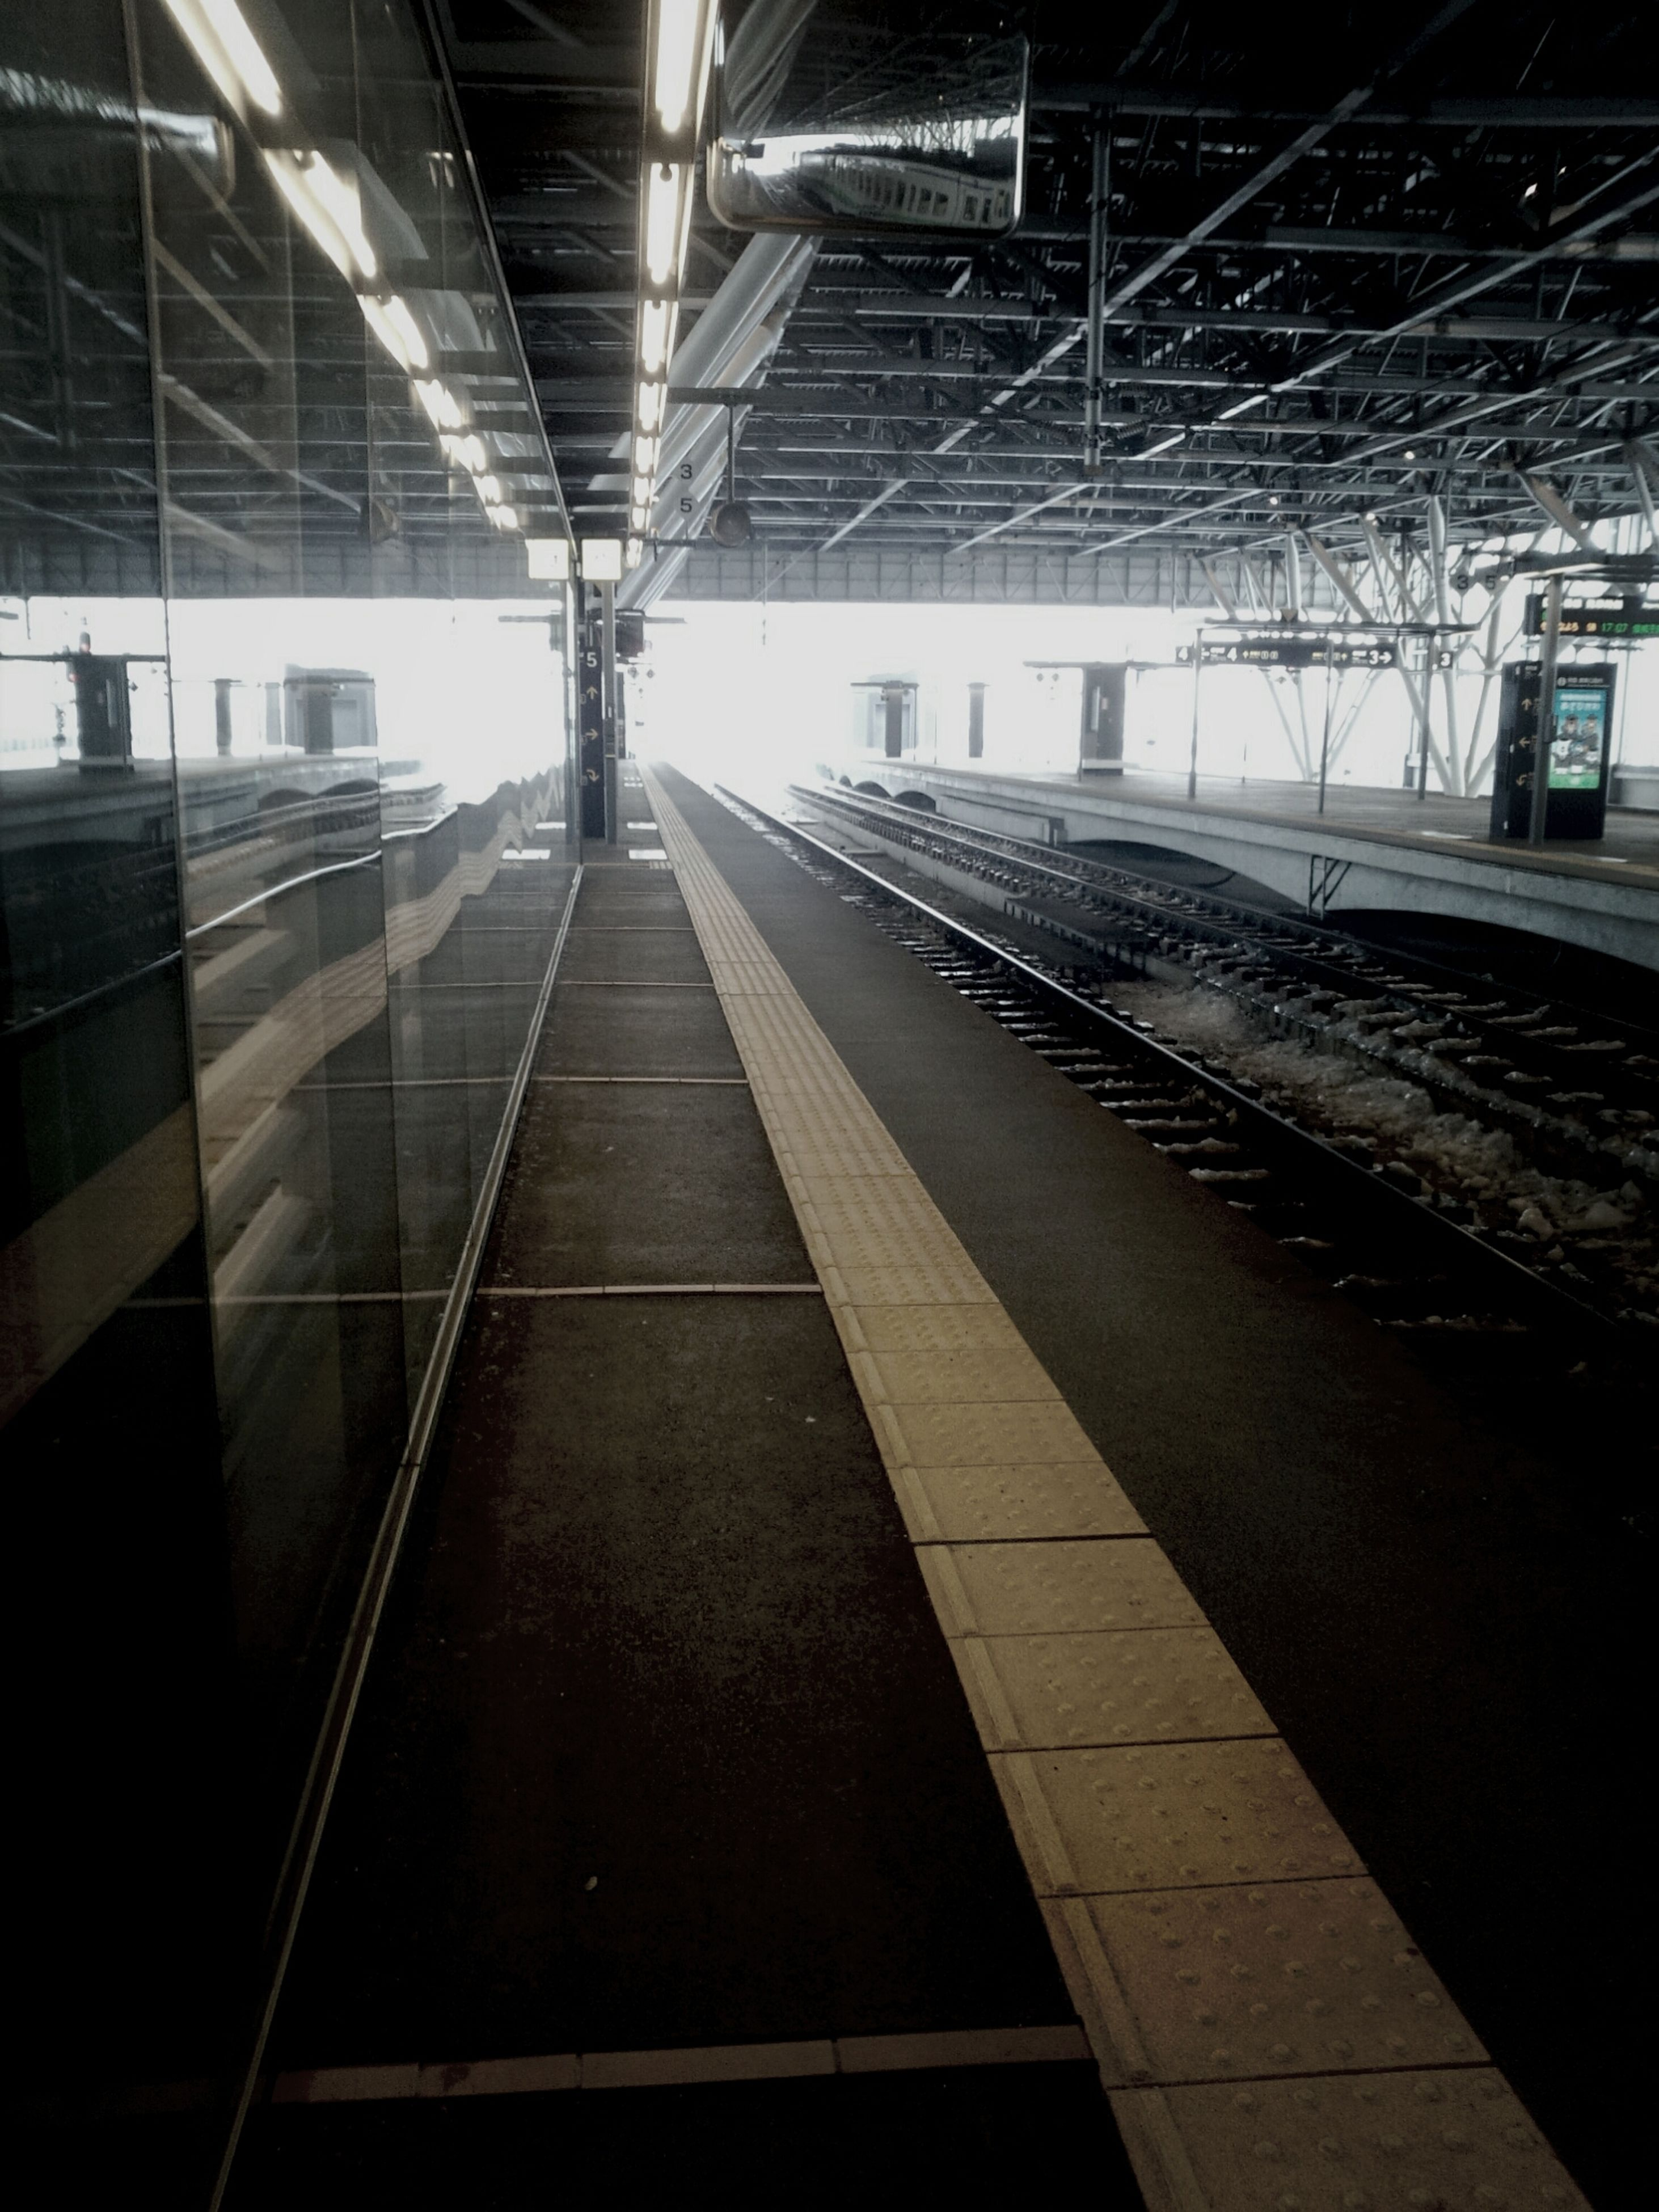 indoors, transportation, railroad track, rail transportation, railroad station, railroad station platform, public transportation, ceiling, built structure, the way forward, architecture, illuminated, diminishing perspective, empty, vanishing point, subway station, interior, travel, transportation building - type of building, subway